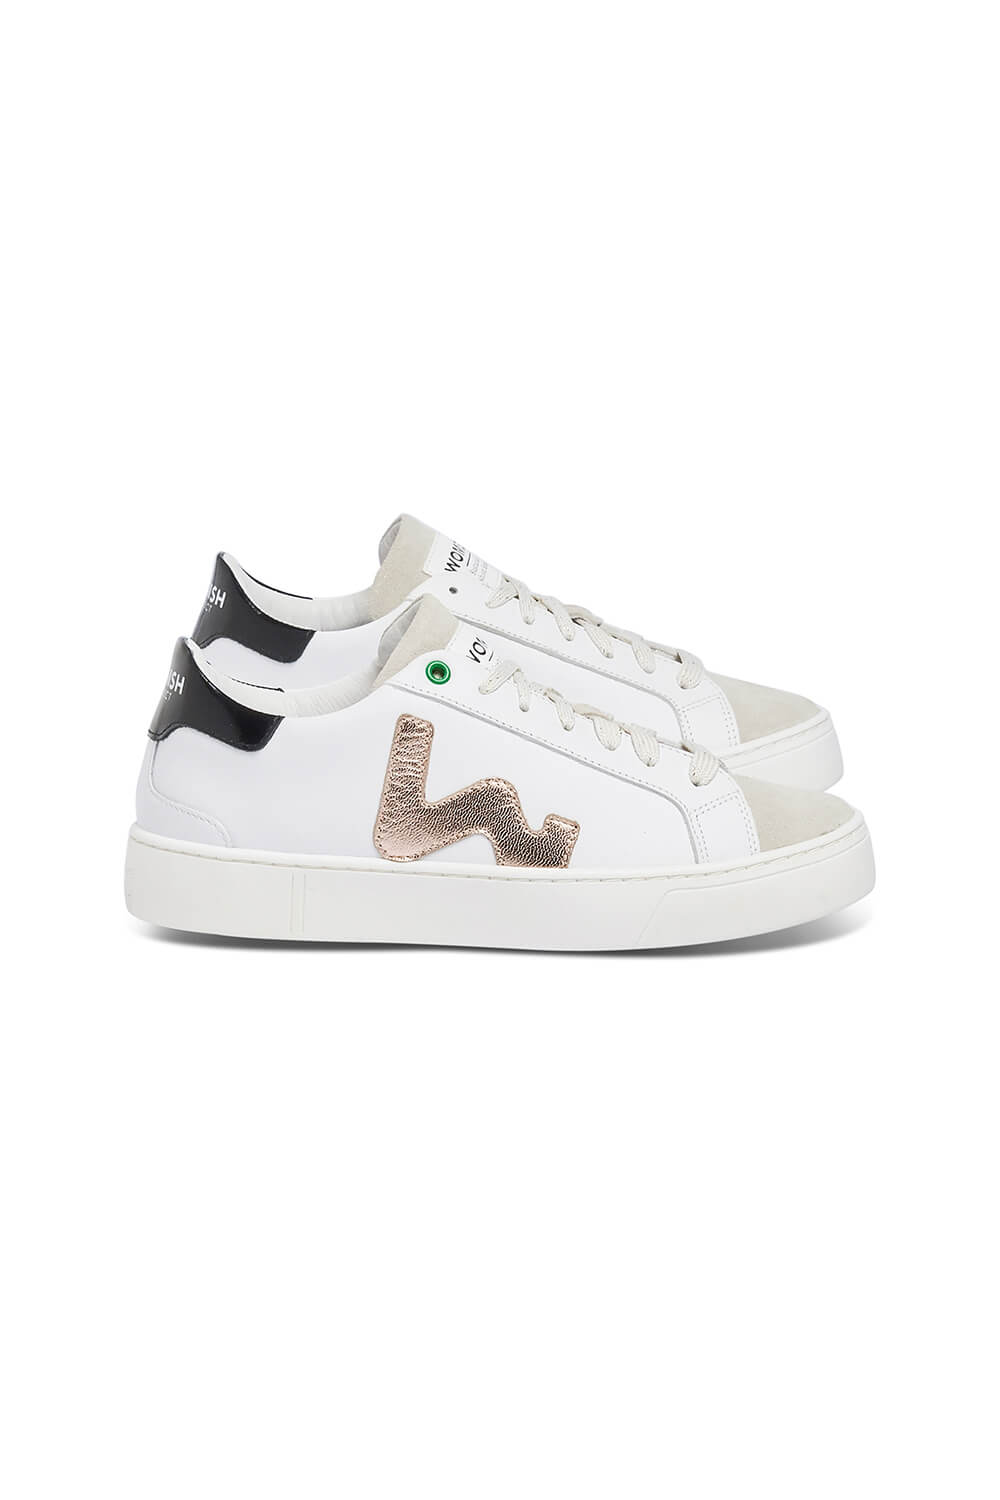 WOMSH Sneakers CONCEPT in white and beige leather with details in copper and black